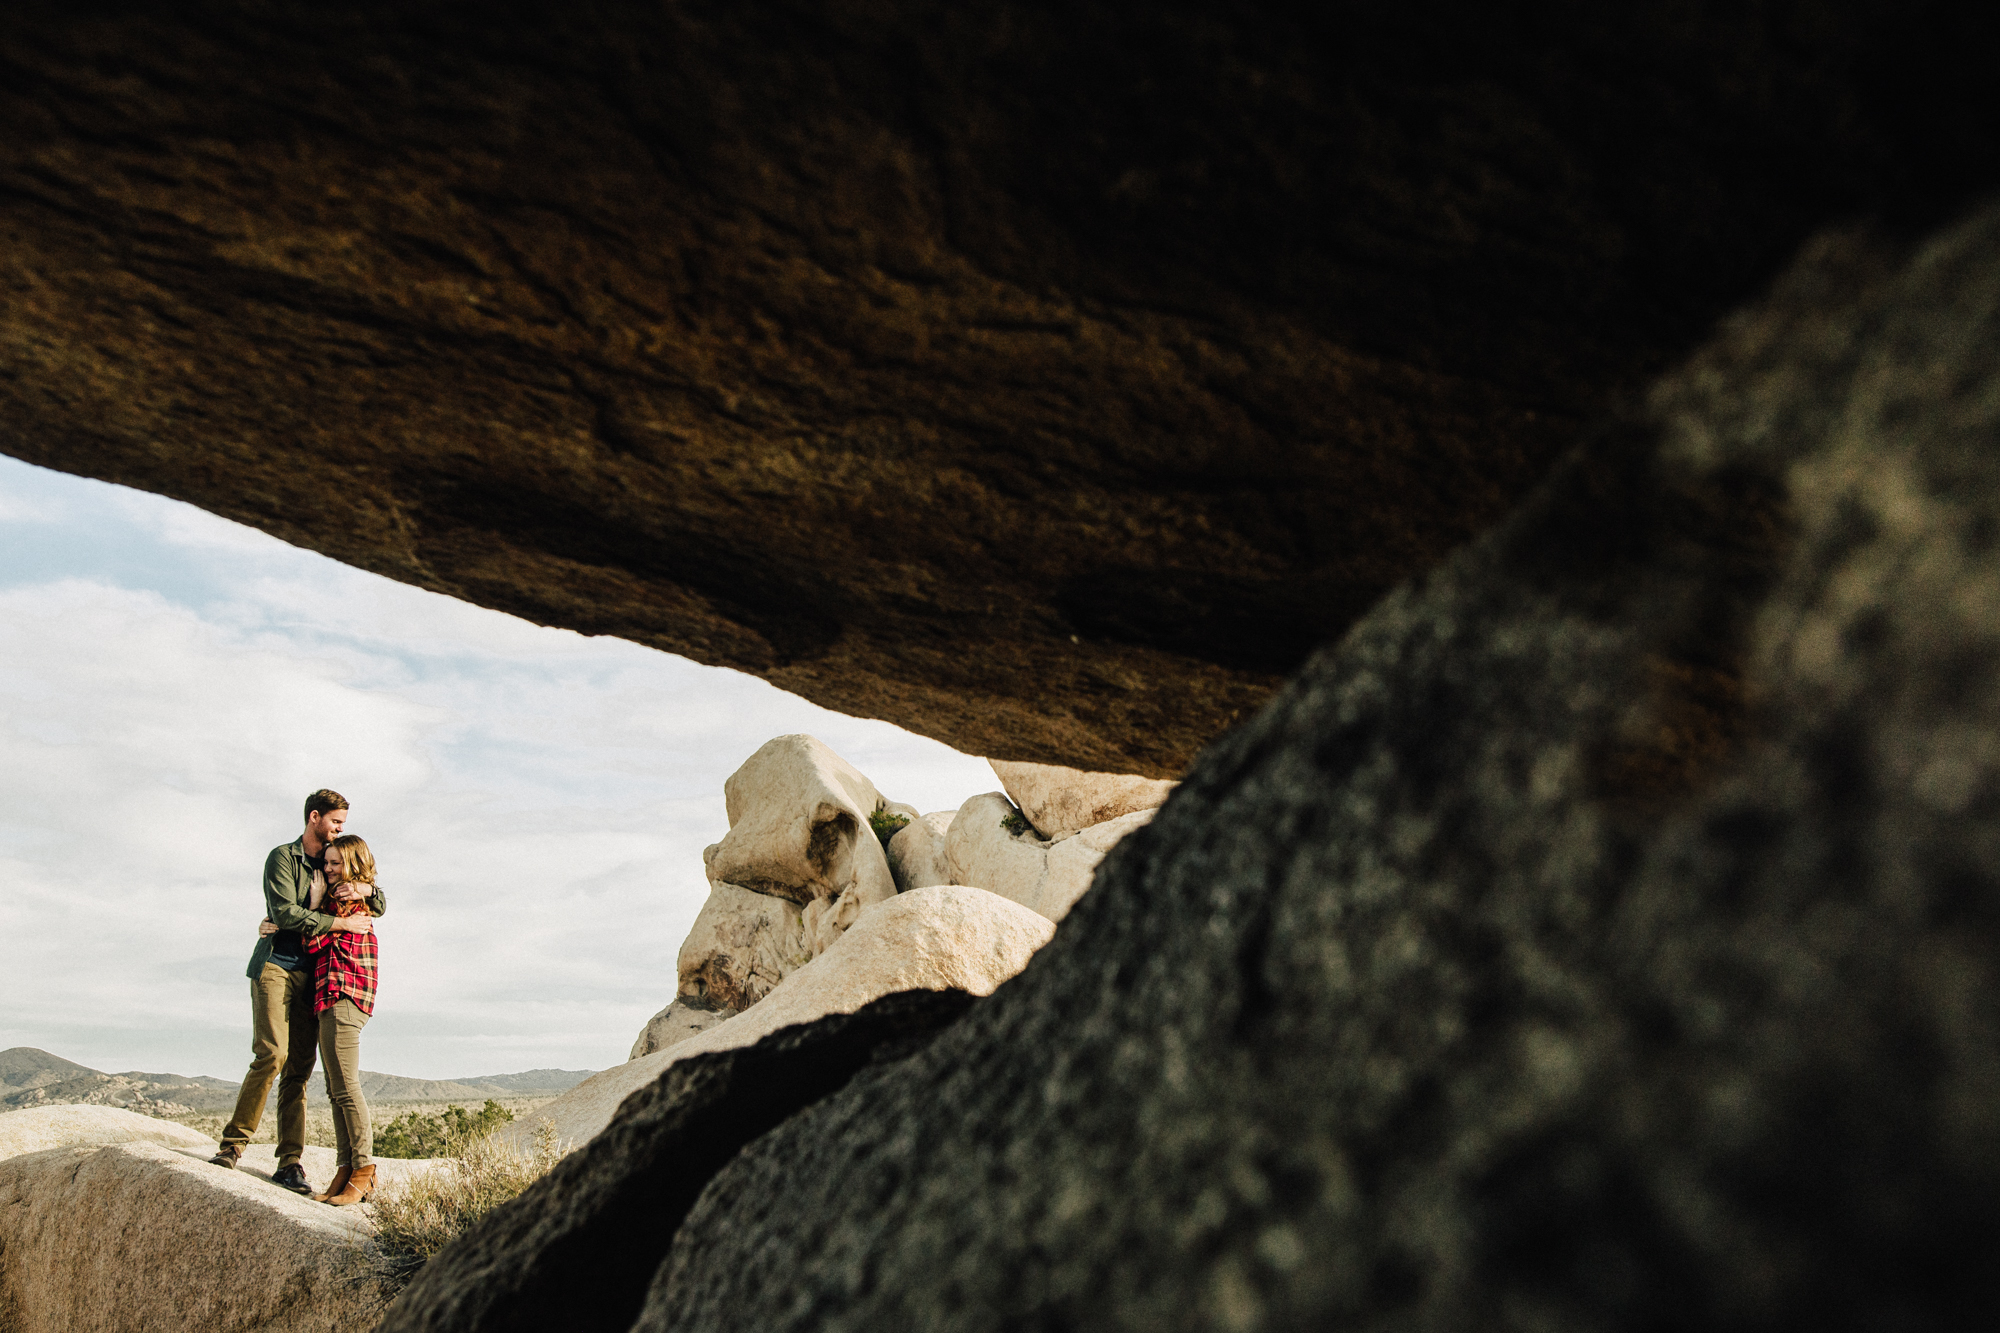 ©Isaiah & Taylor Photography - Destination Wedding Photographers - Joshua Tree, California Adventure Engagement-011.jpg